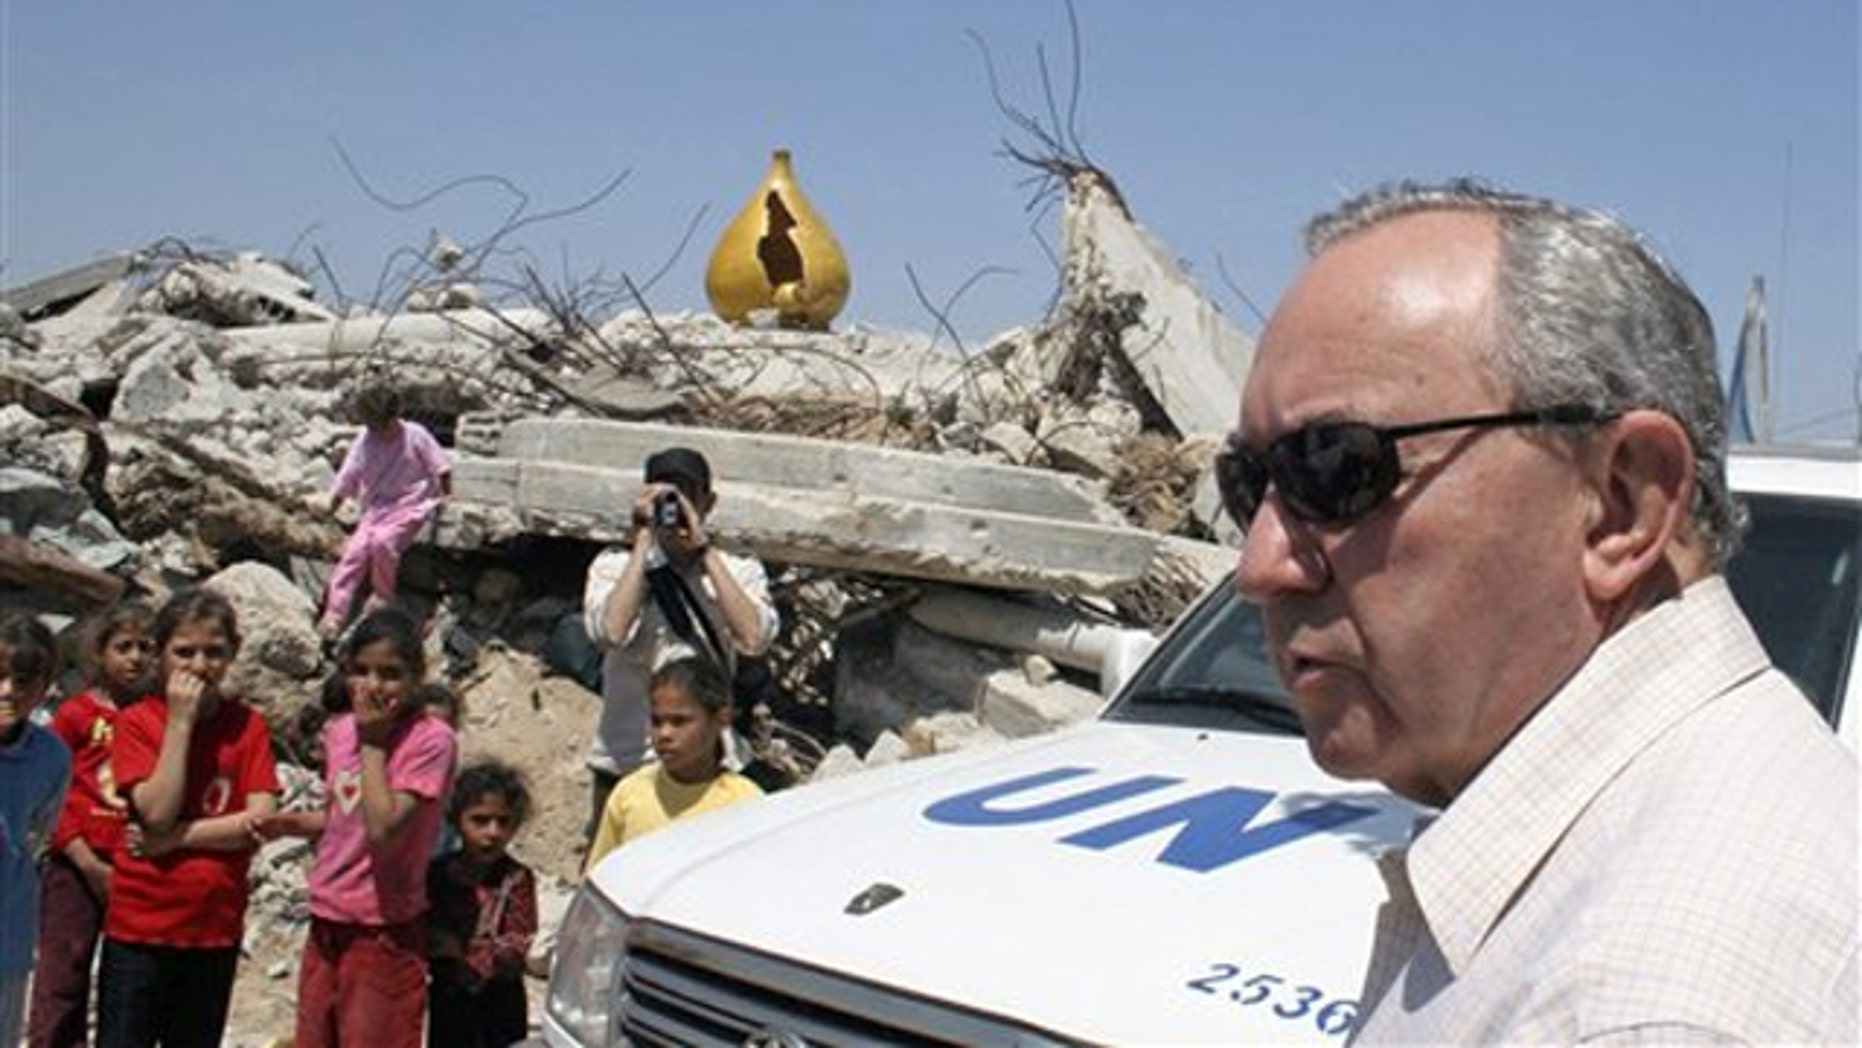 FILE: In this June 3, 2009, photo, U.N. investigator Richard Goldstone visits a house destroyed during an artillery strike during Israel's offensive in January 2009 in Gaza City.